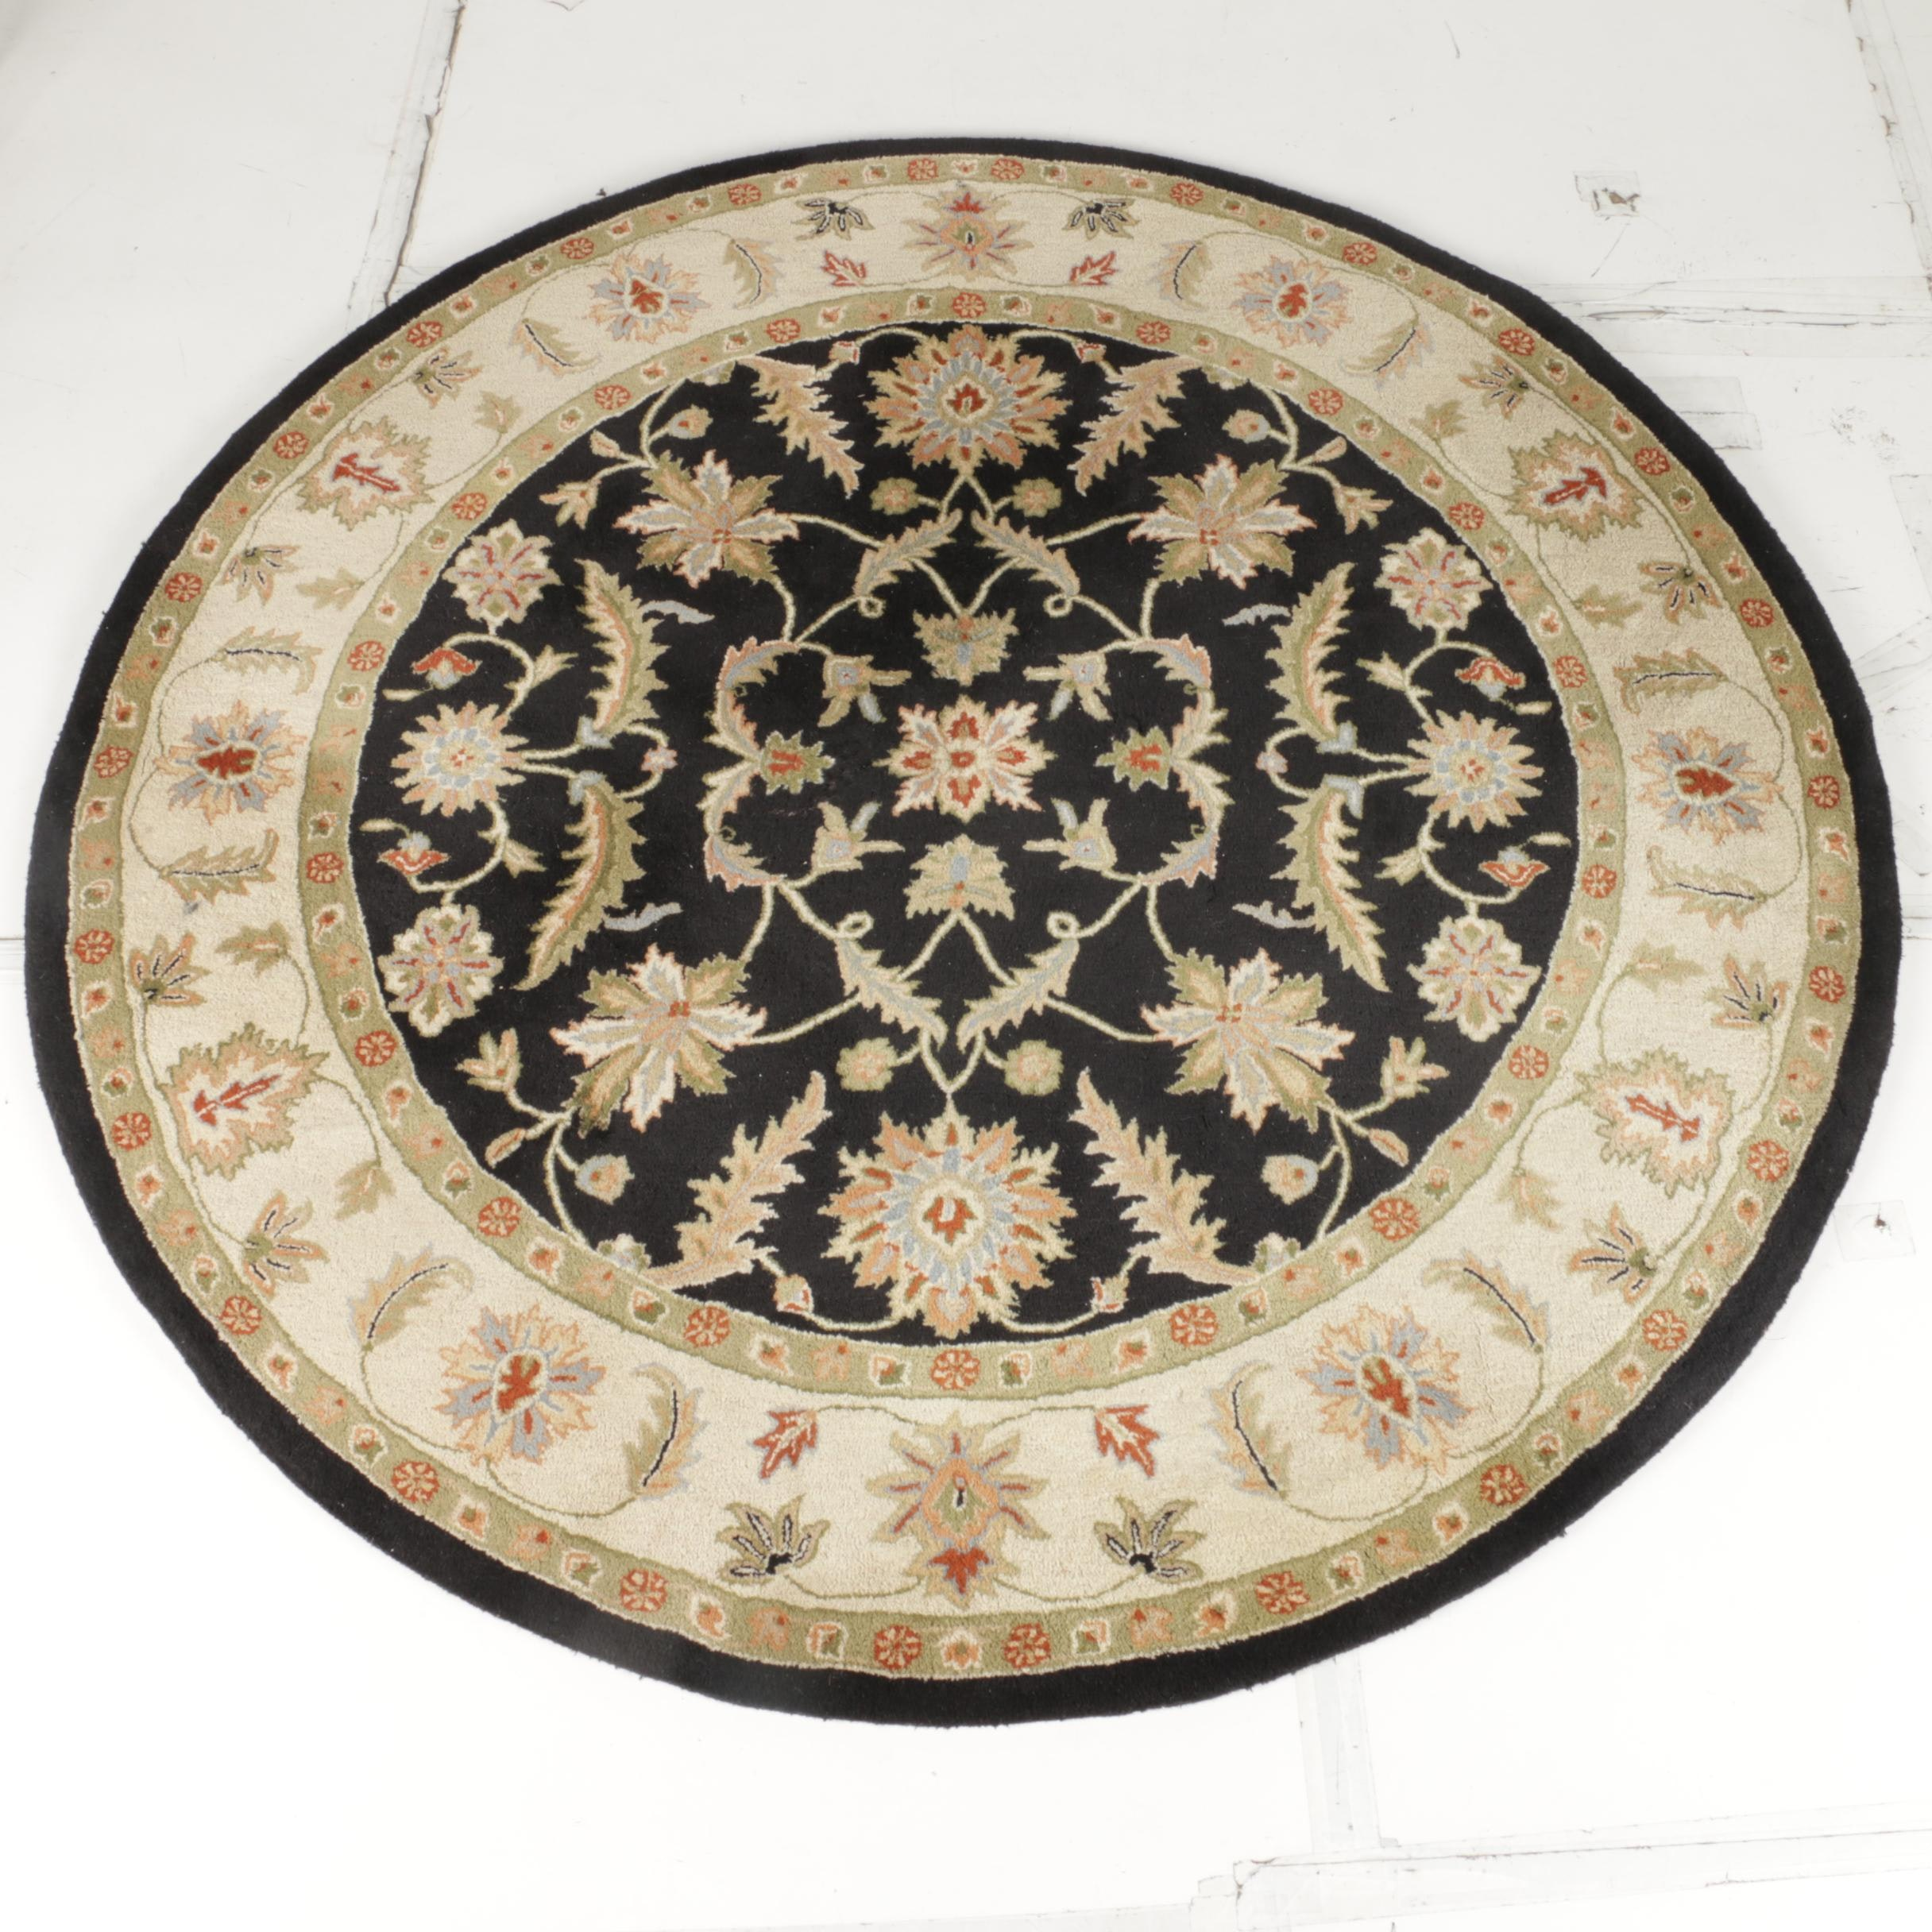 Hand-Tufted Indian Tabriz Style Round Area Rug